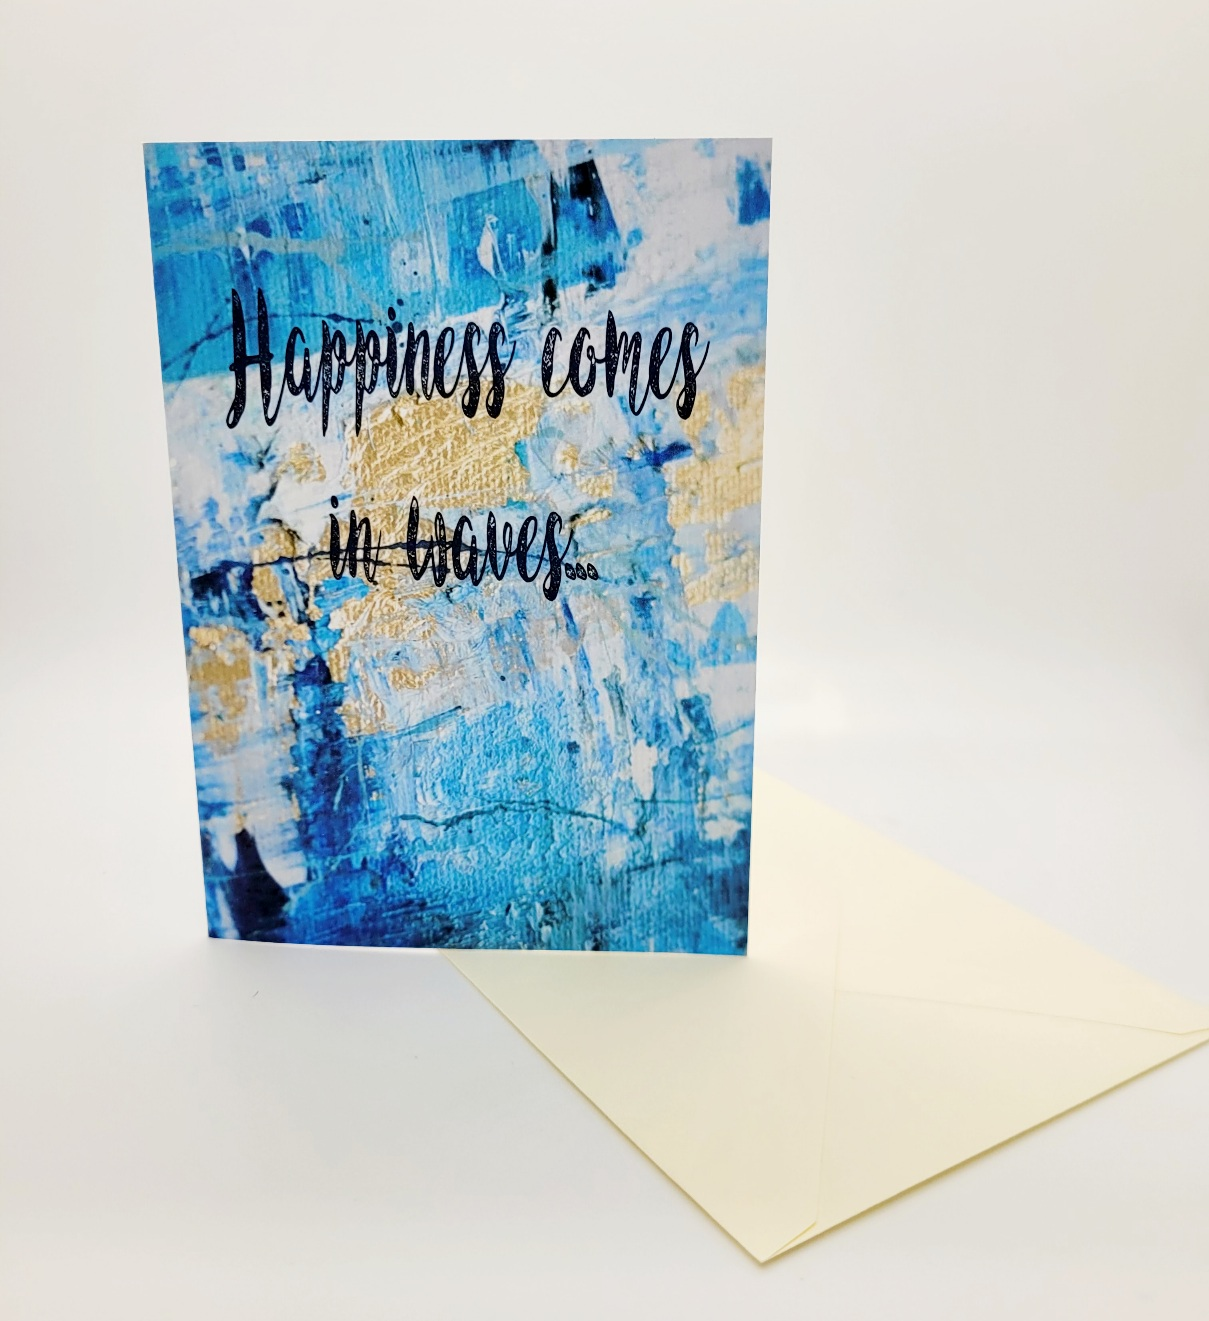 Greetings card. Happiness